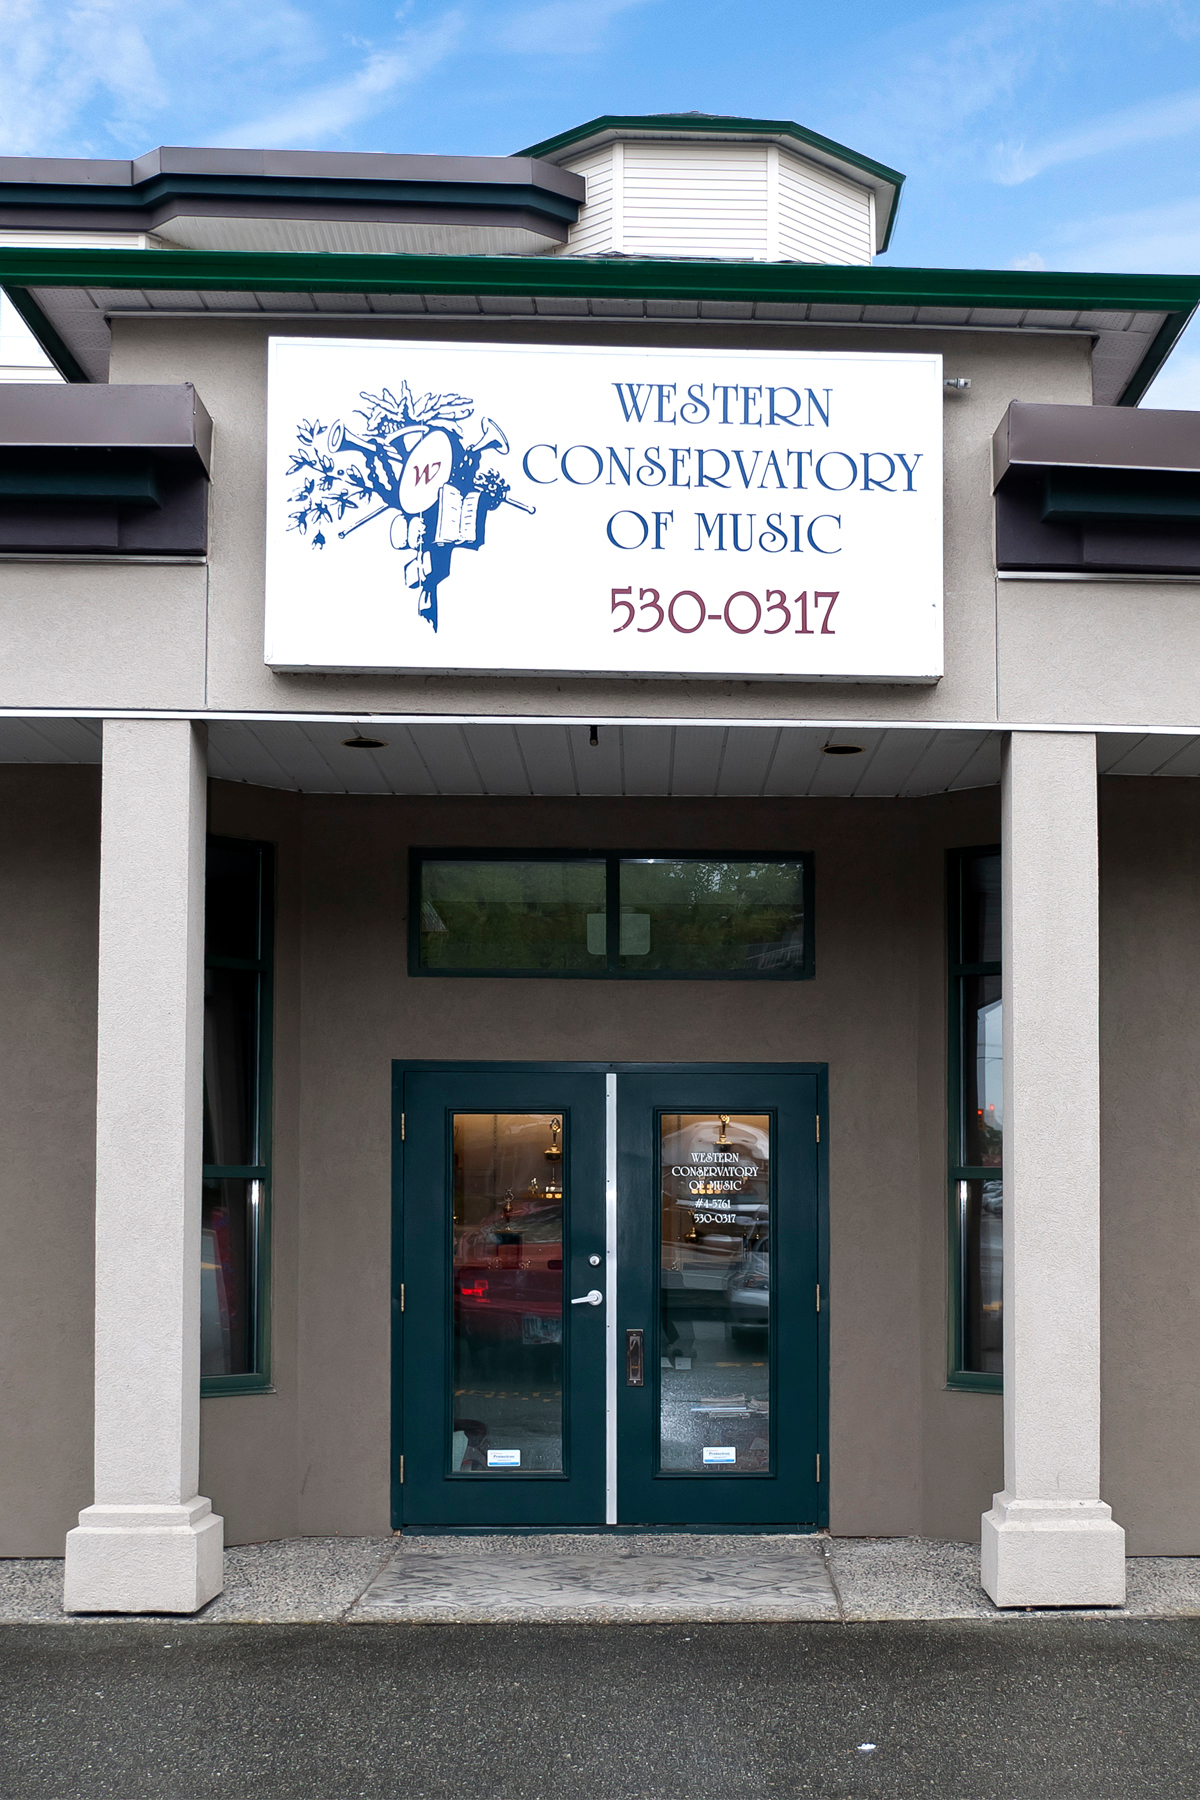 Western Conservatory Of Music in Langley